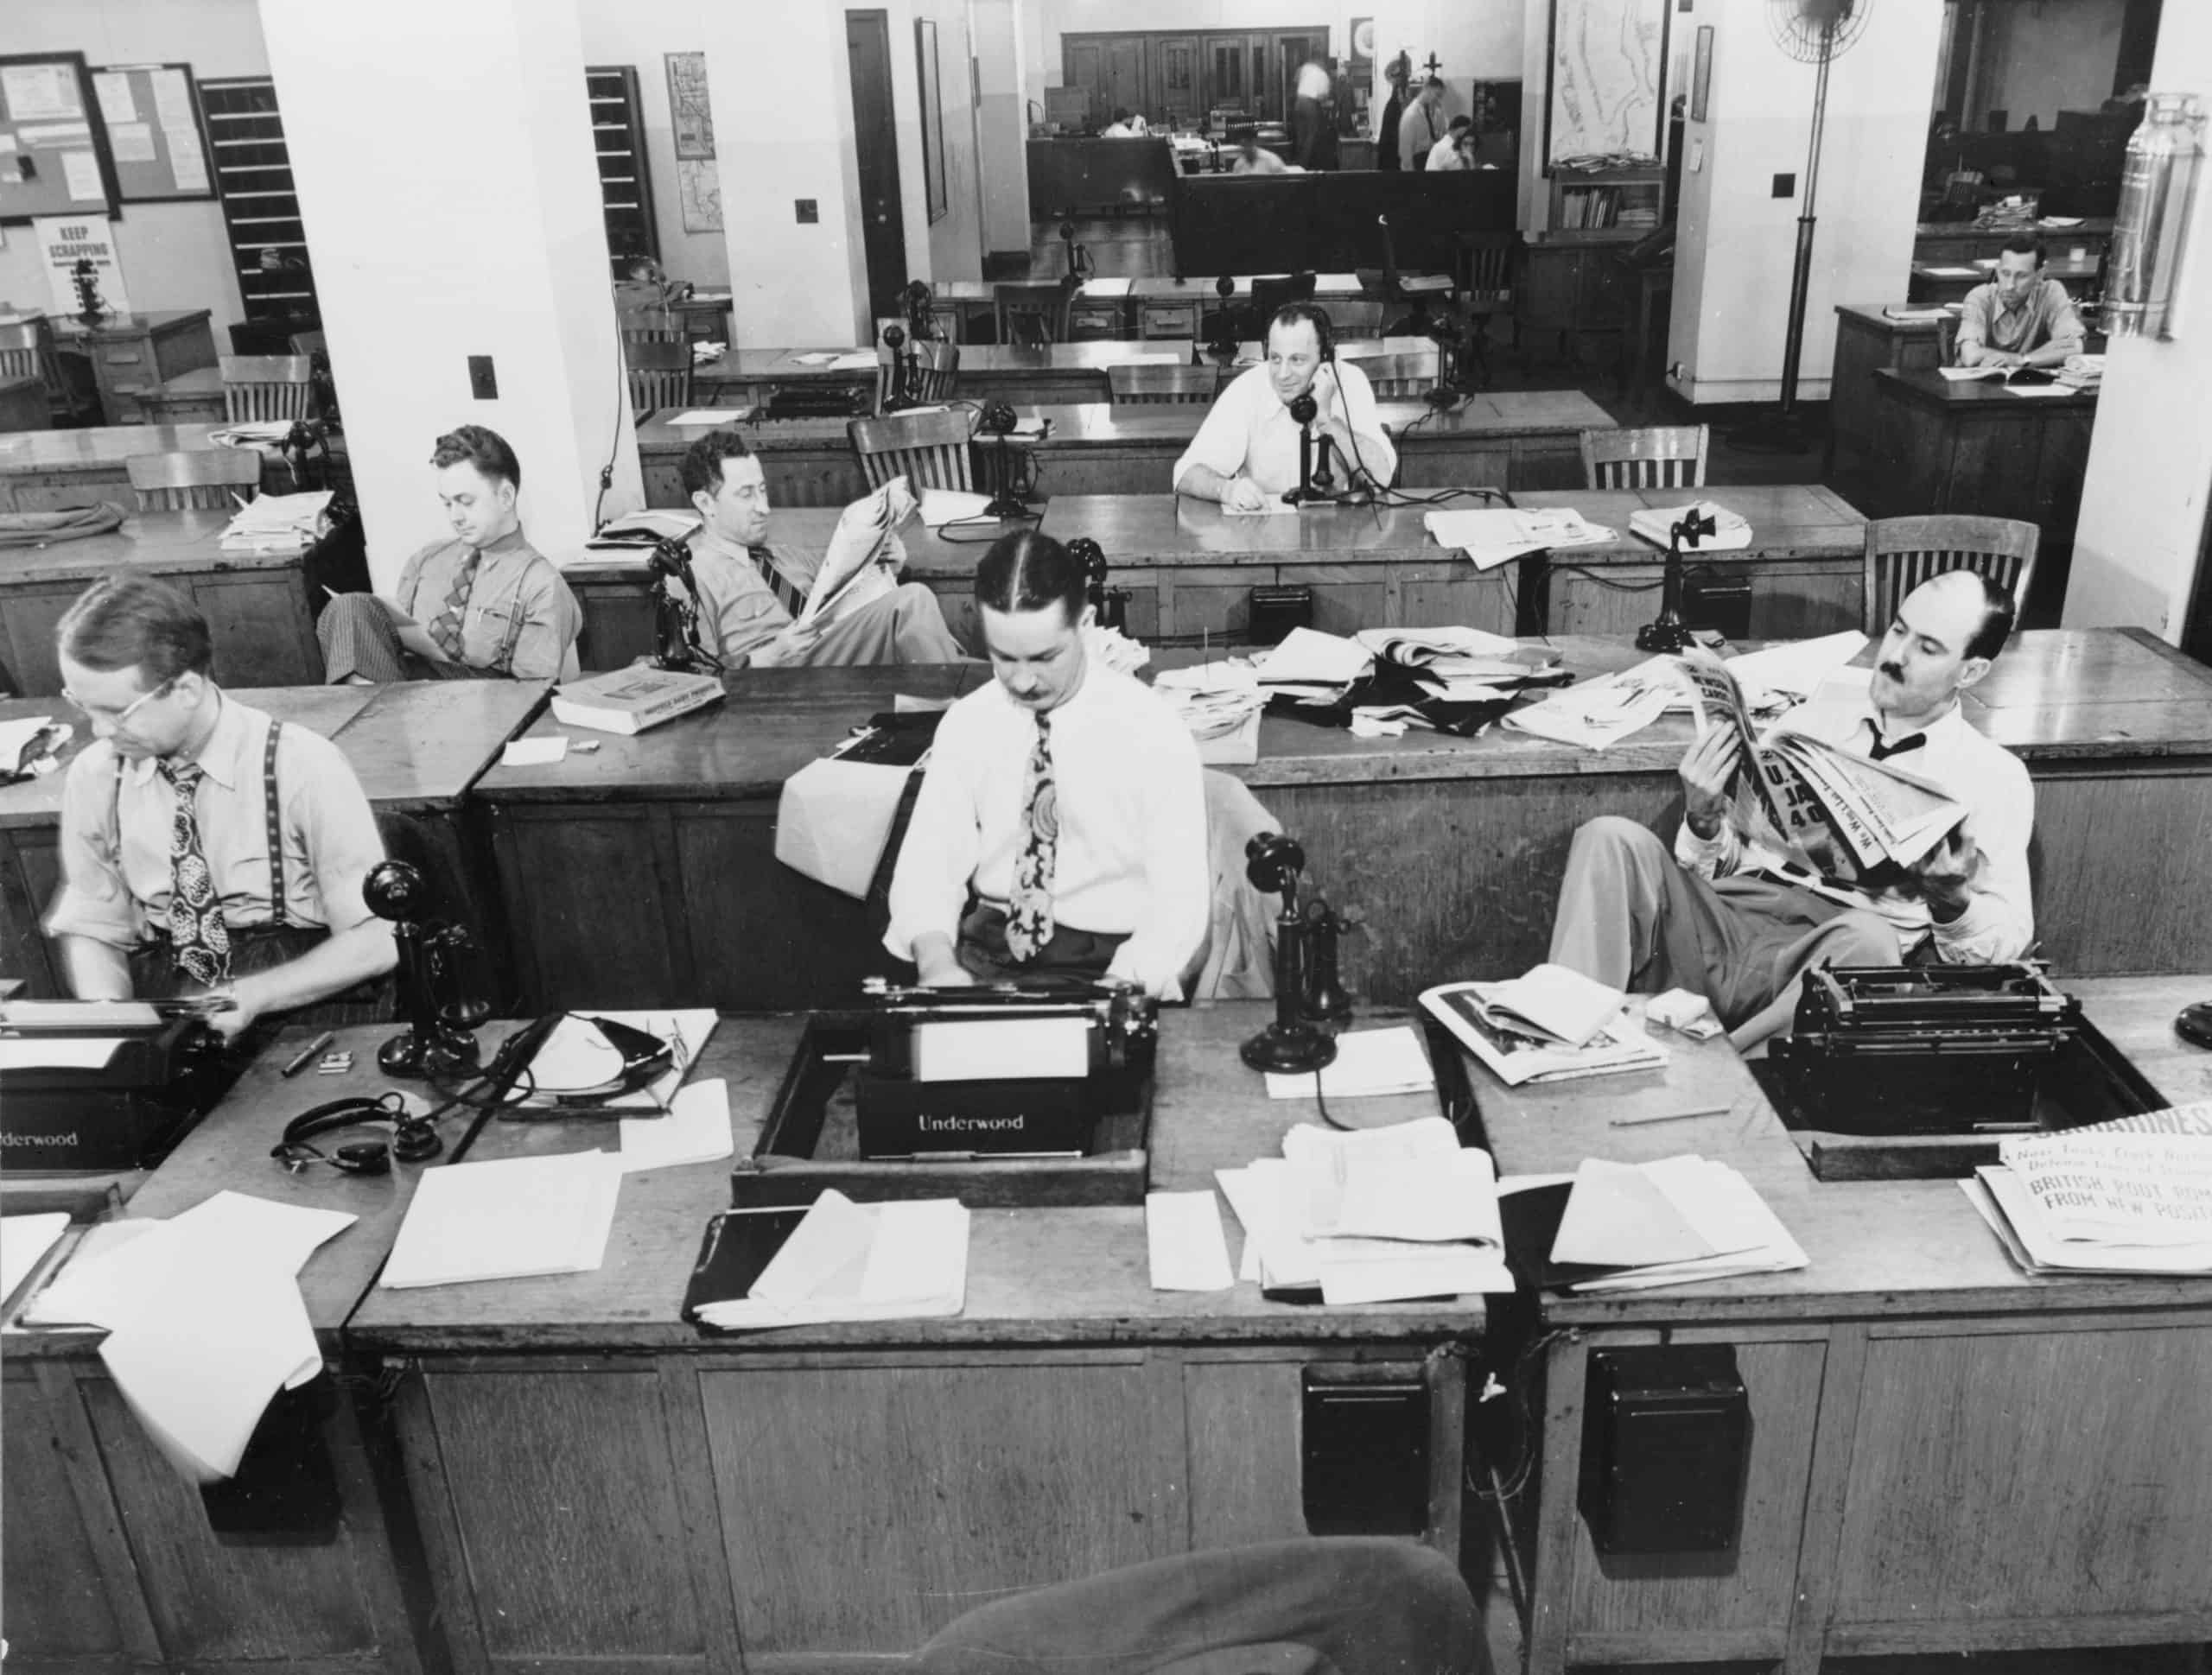 Black and white image of newsroom with journalists at desks.